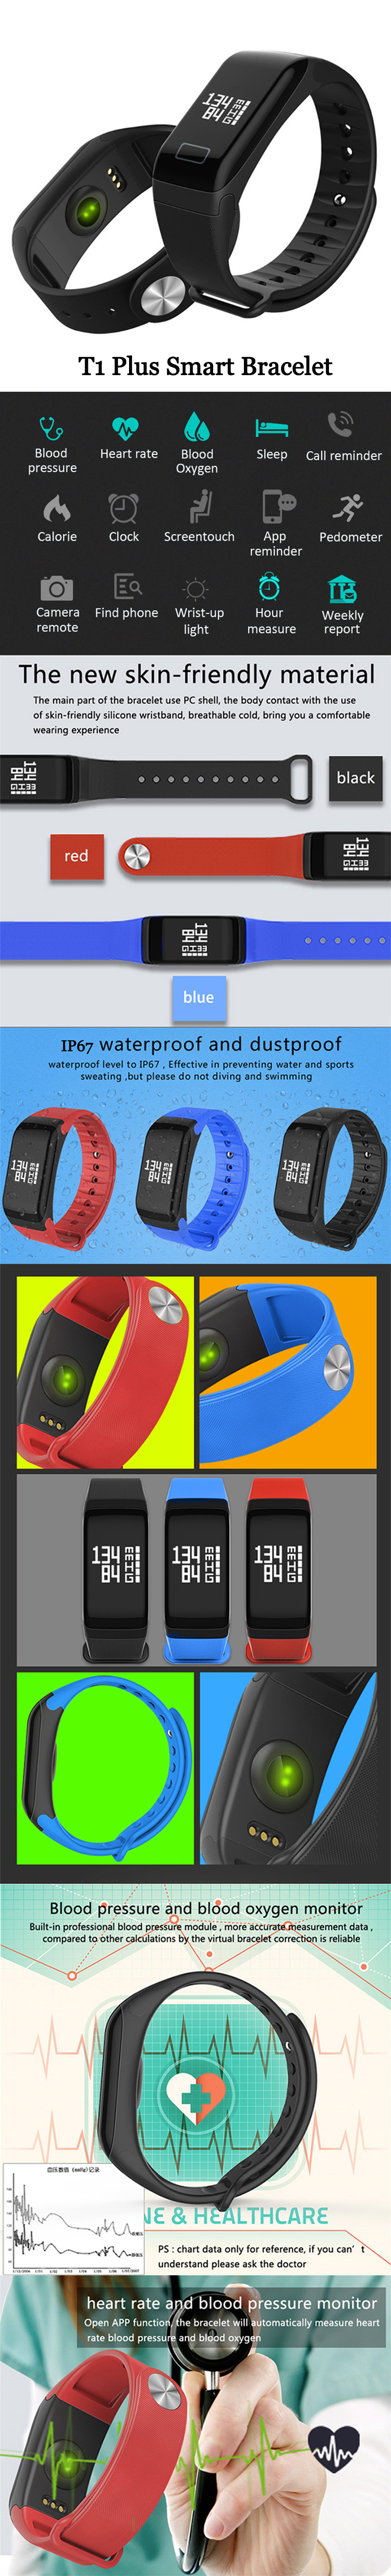 Xanes T1 066 Oled Ip67 Waterproof Heart Rate Blood Pressure Xiaomi 042ampquot Screen Mi Band 2 Smart Wristband Replace Black Shipping Methods